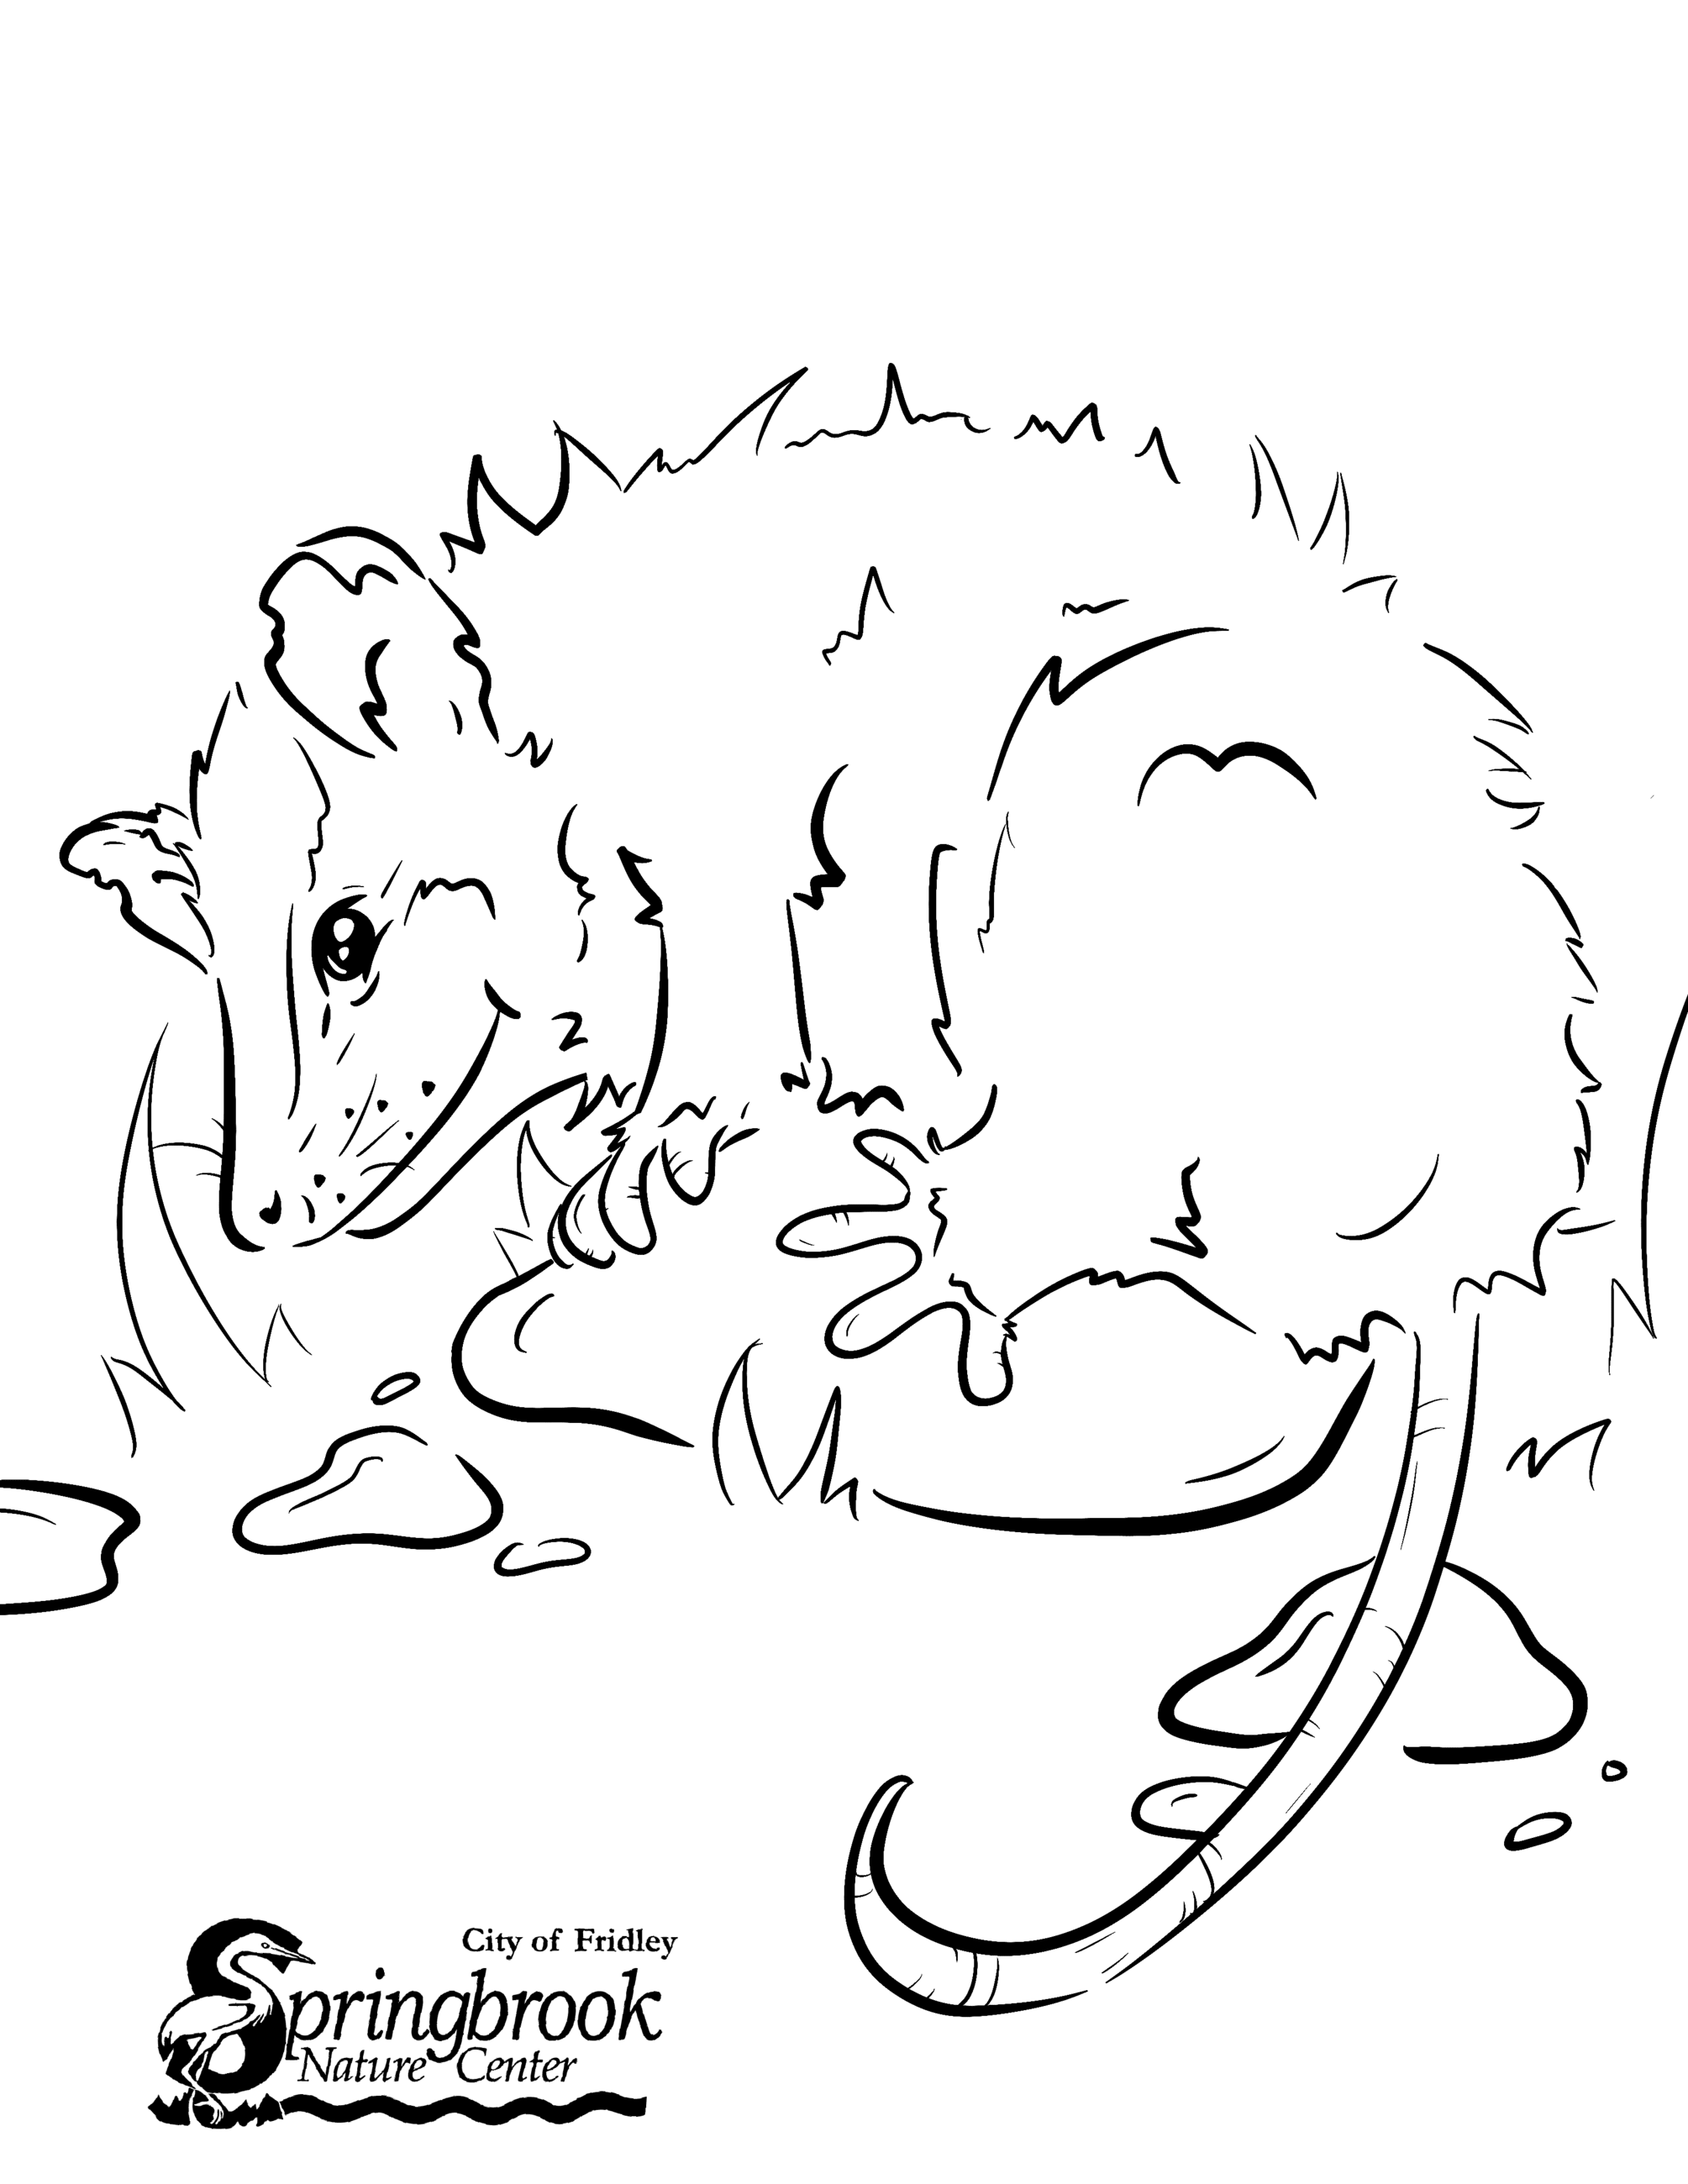 Opossum Coloring Page Opens in new window